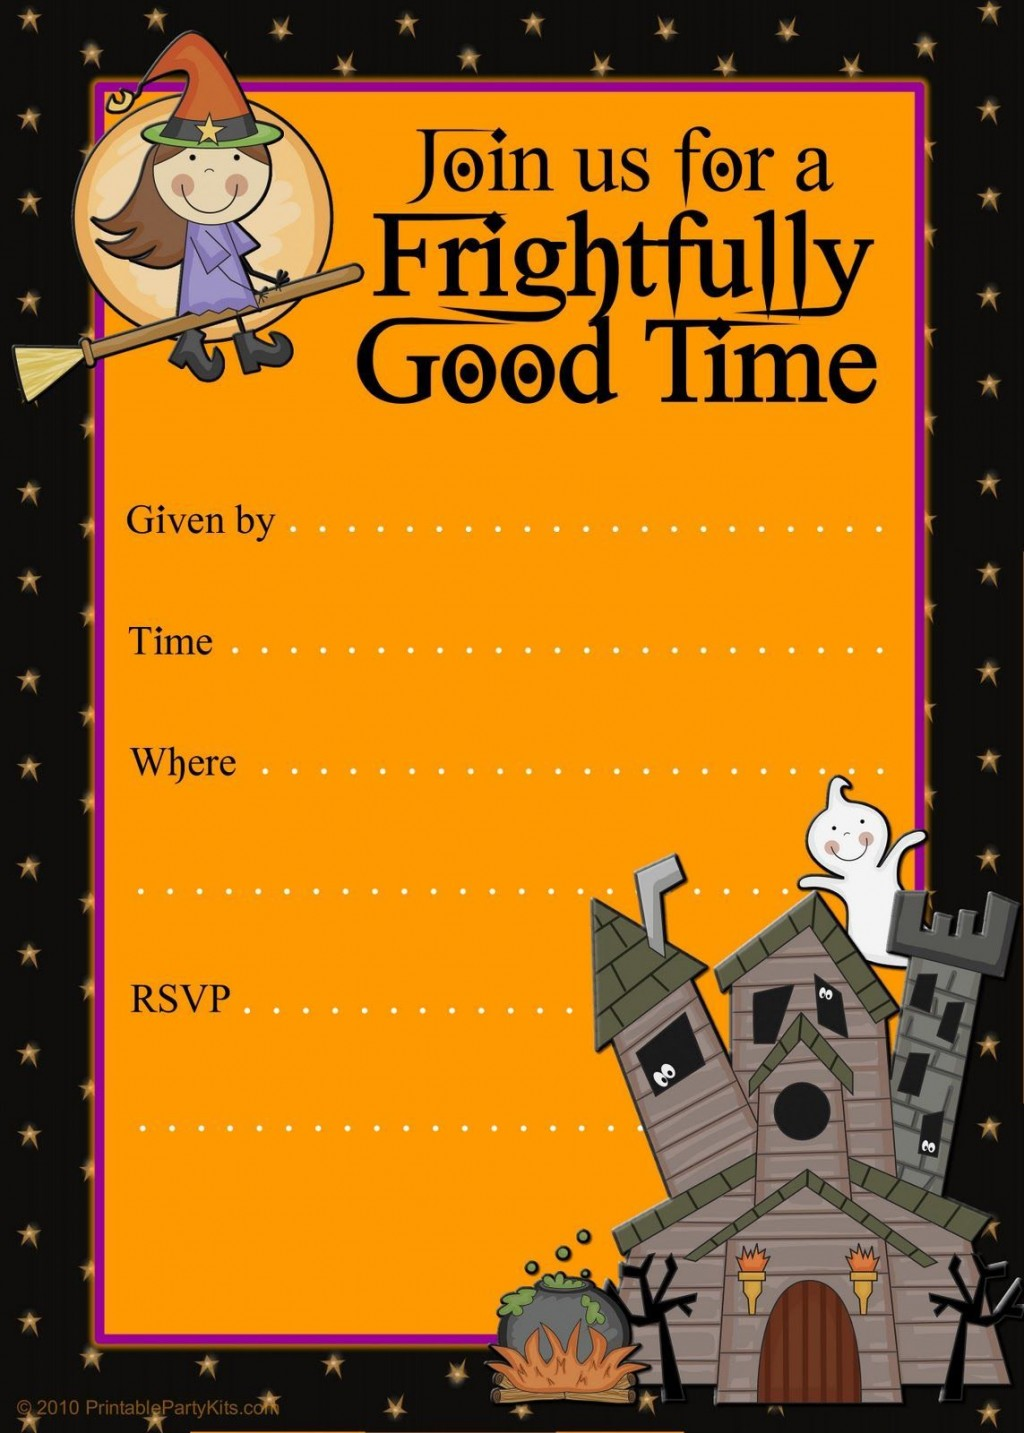 006 Surprising Halloween Party Invite Template High Resolution  Spooky Invitation Free Printable Birthday DownloadLarge